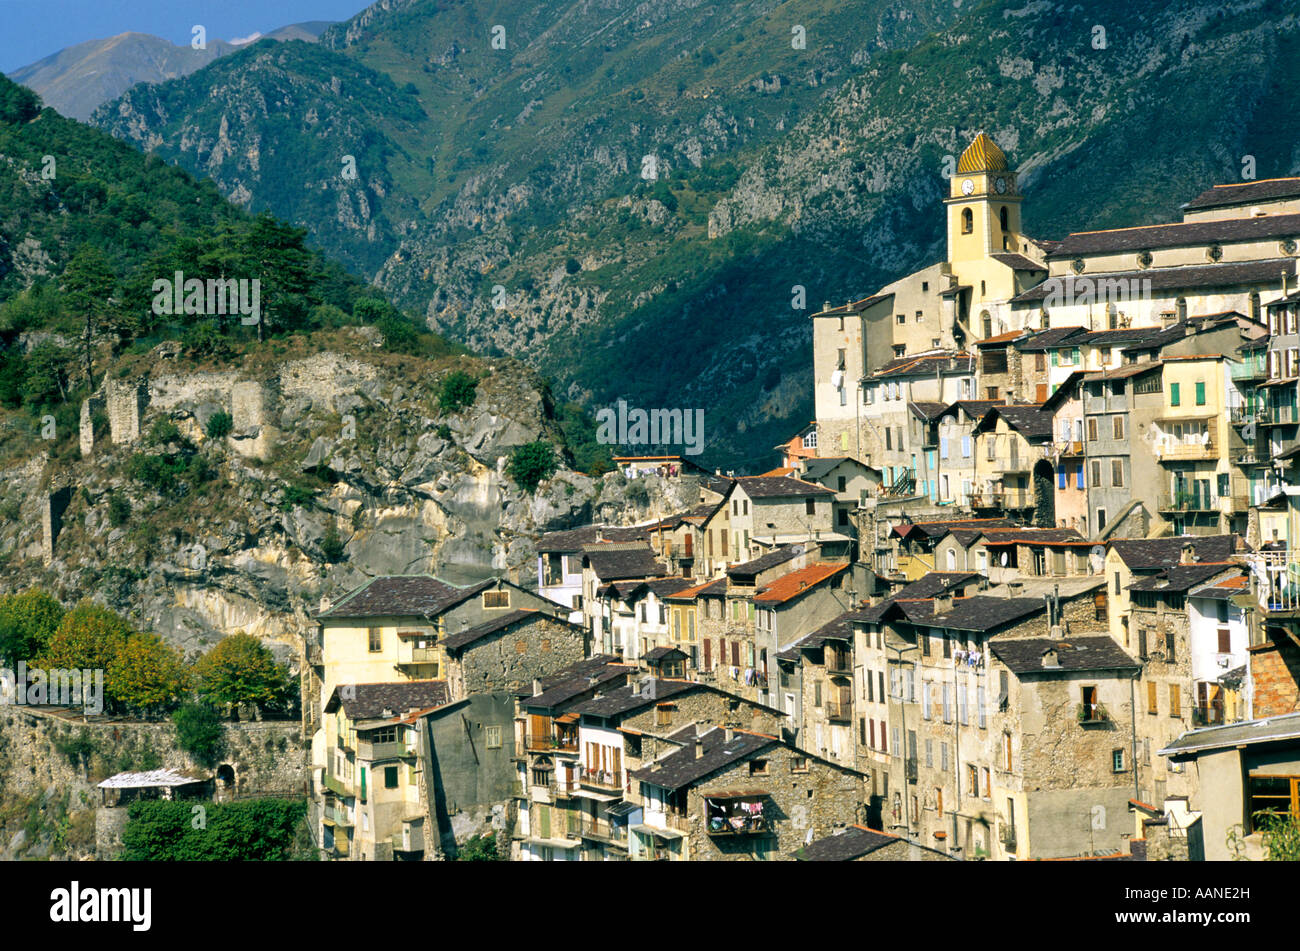 Village of Saorgue, Alpes-Maritimes, France, Europe - Stock Image